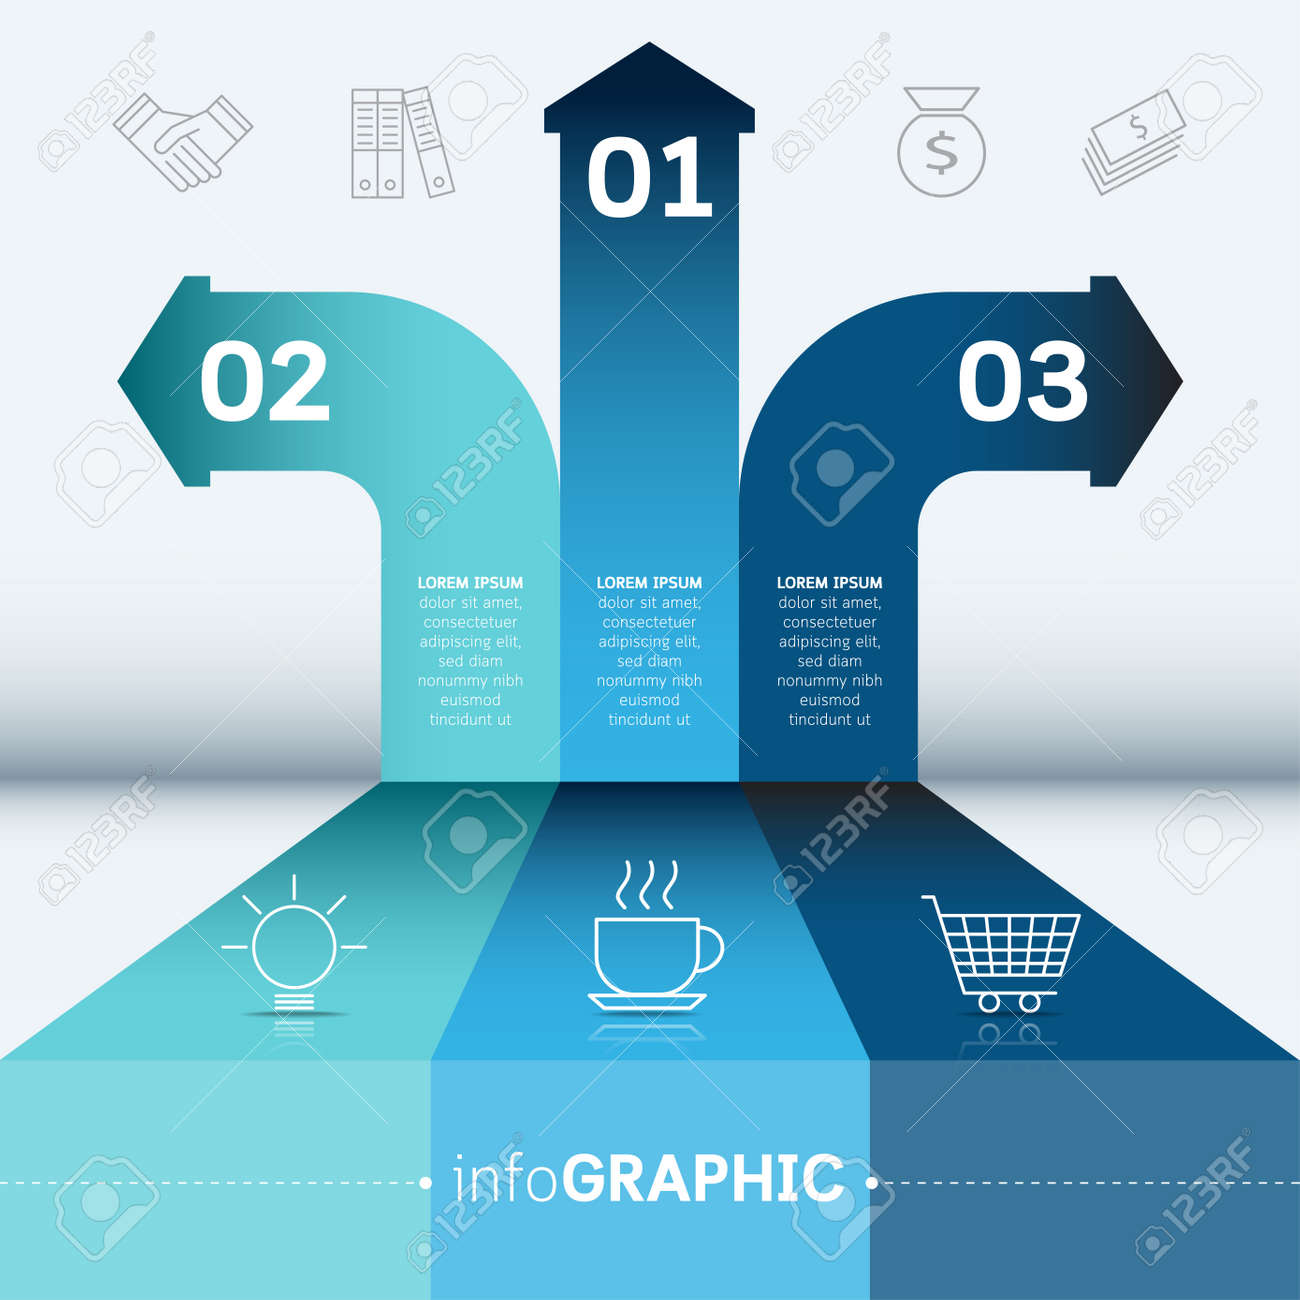 Business Step Business Step Options Diagram Banner Abstract Vector Illustration